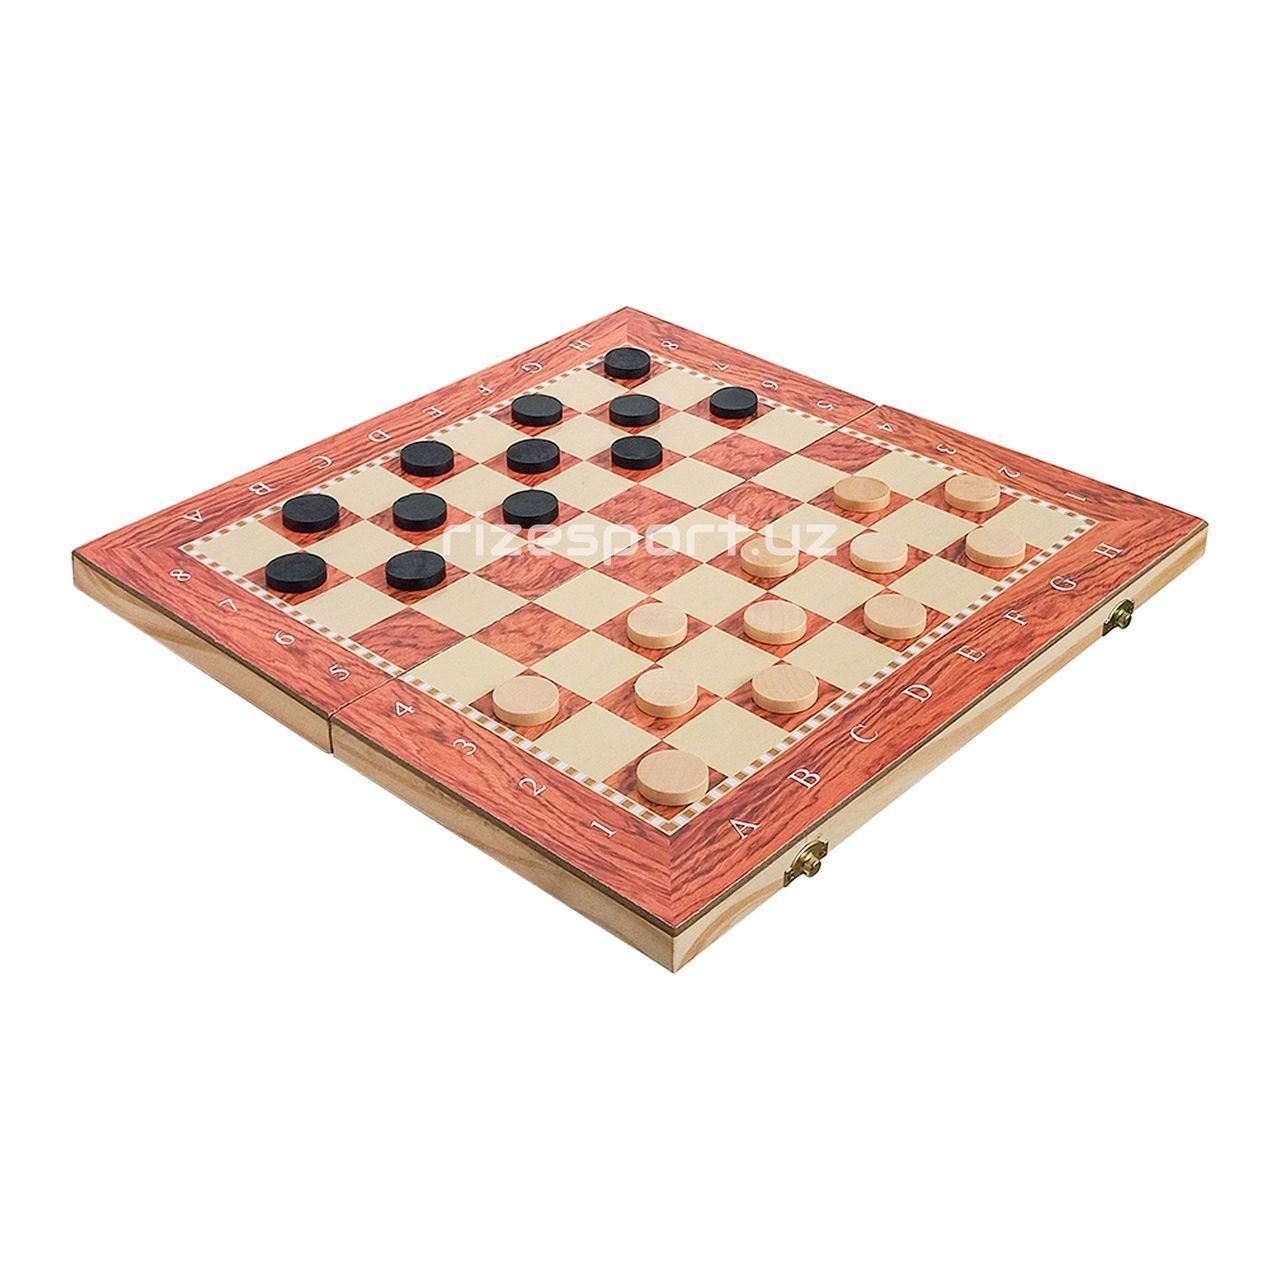 Chess 3 in 1 checkers